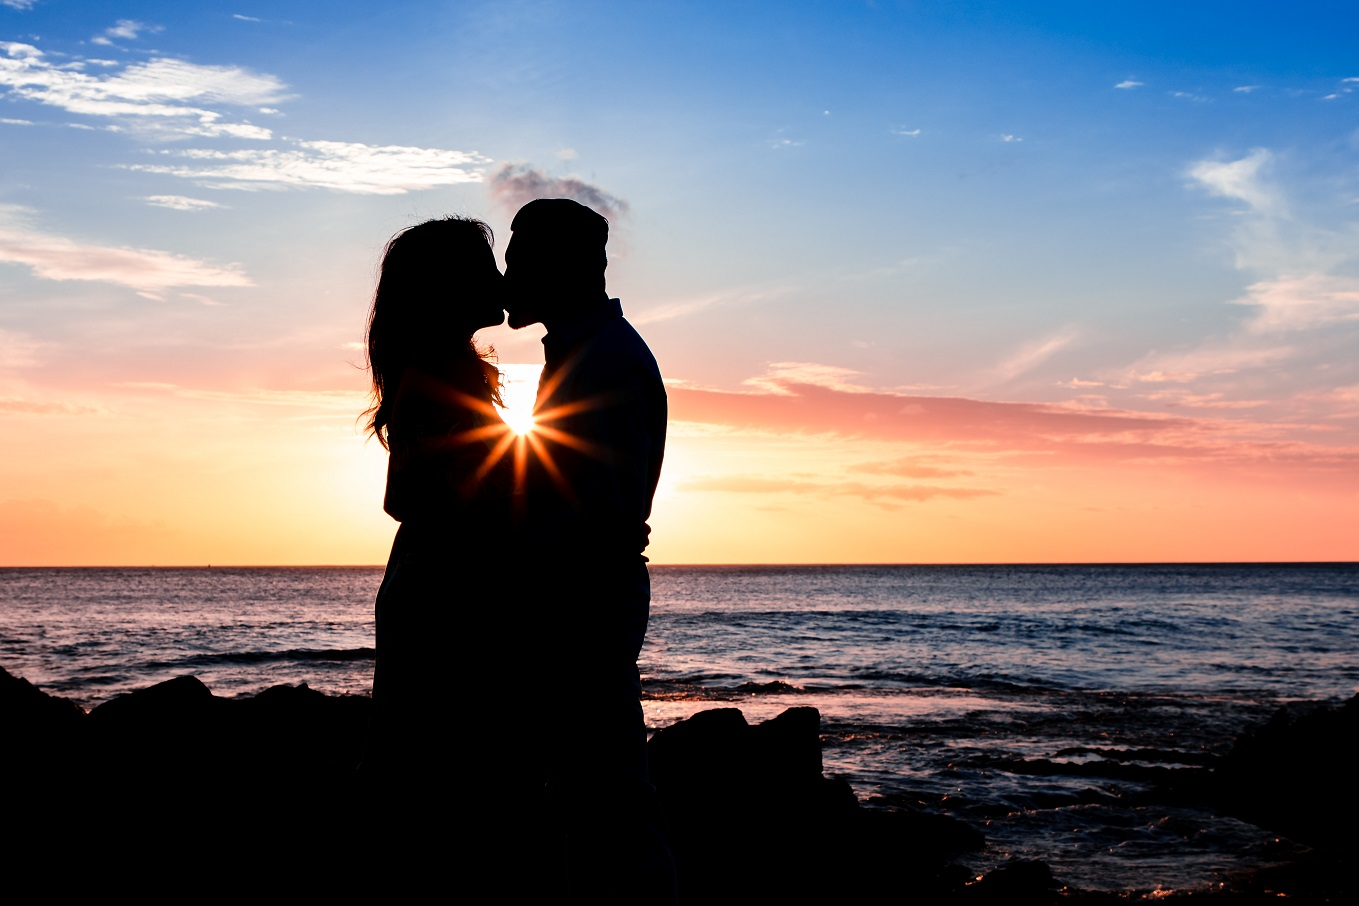 engagement portrait oahu hawaii beach sunset silhouette photographer